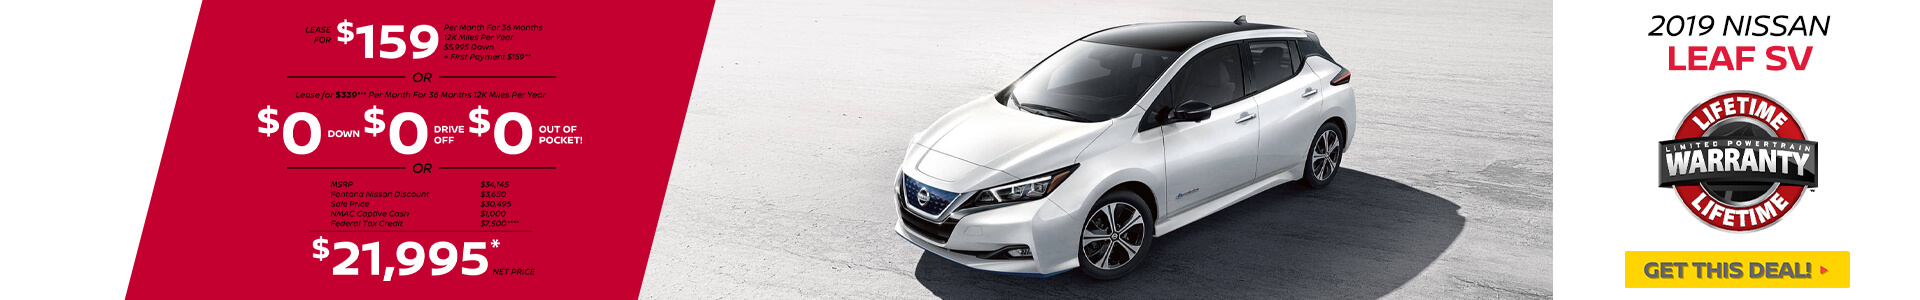 Nissan Leaf $159 Lease